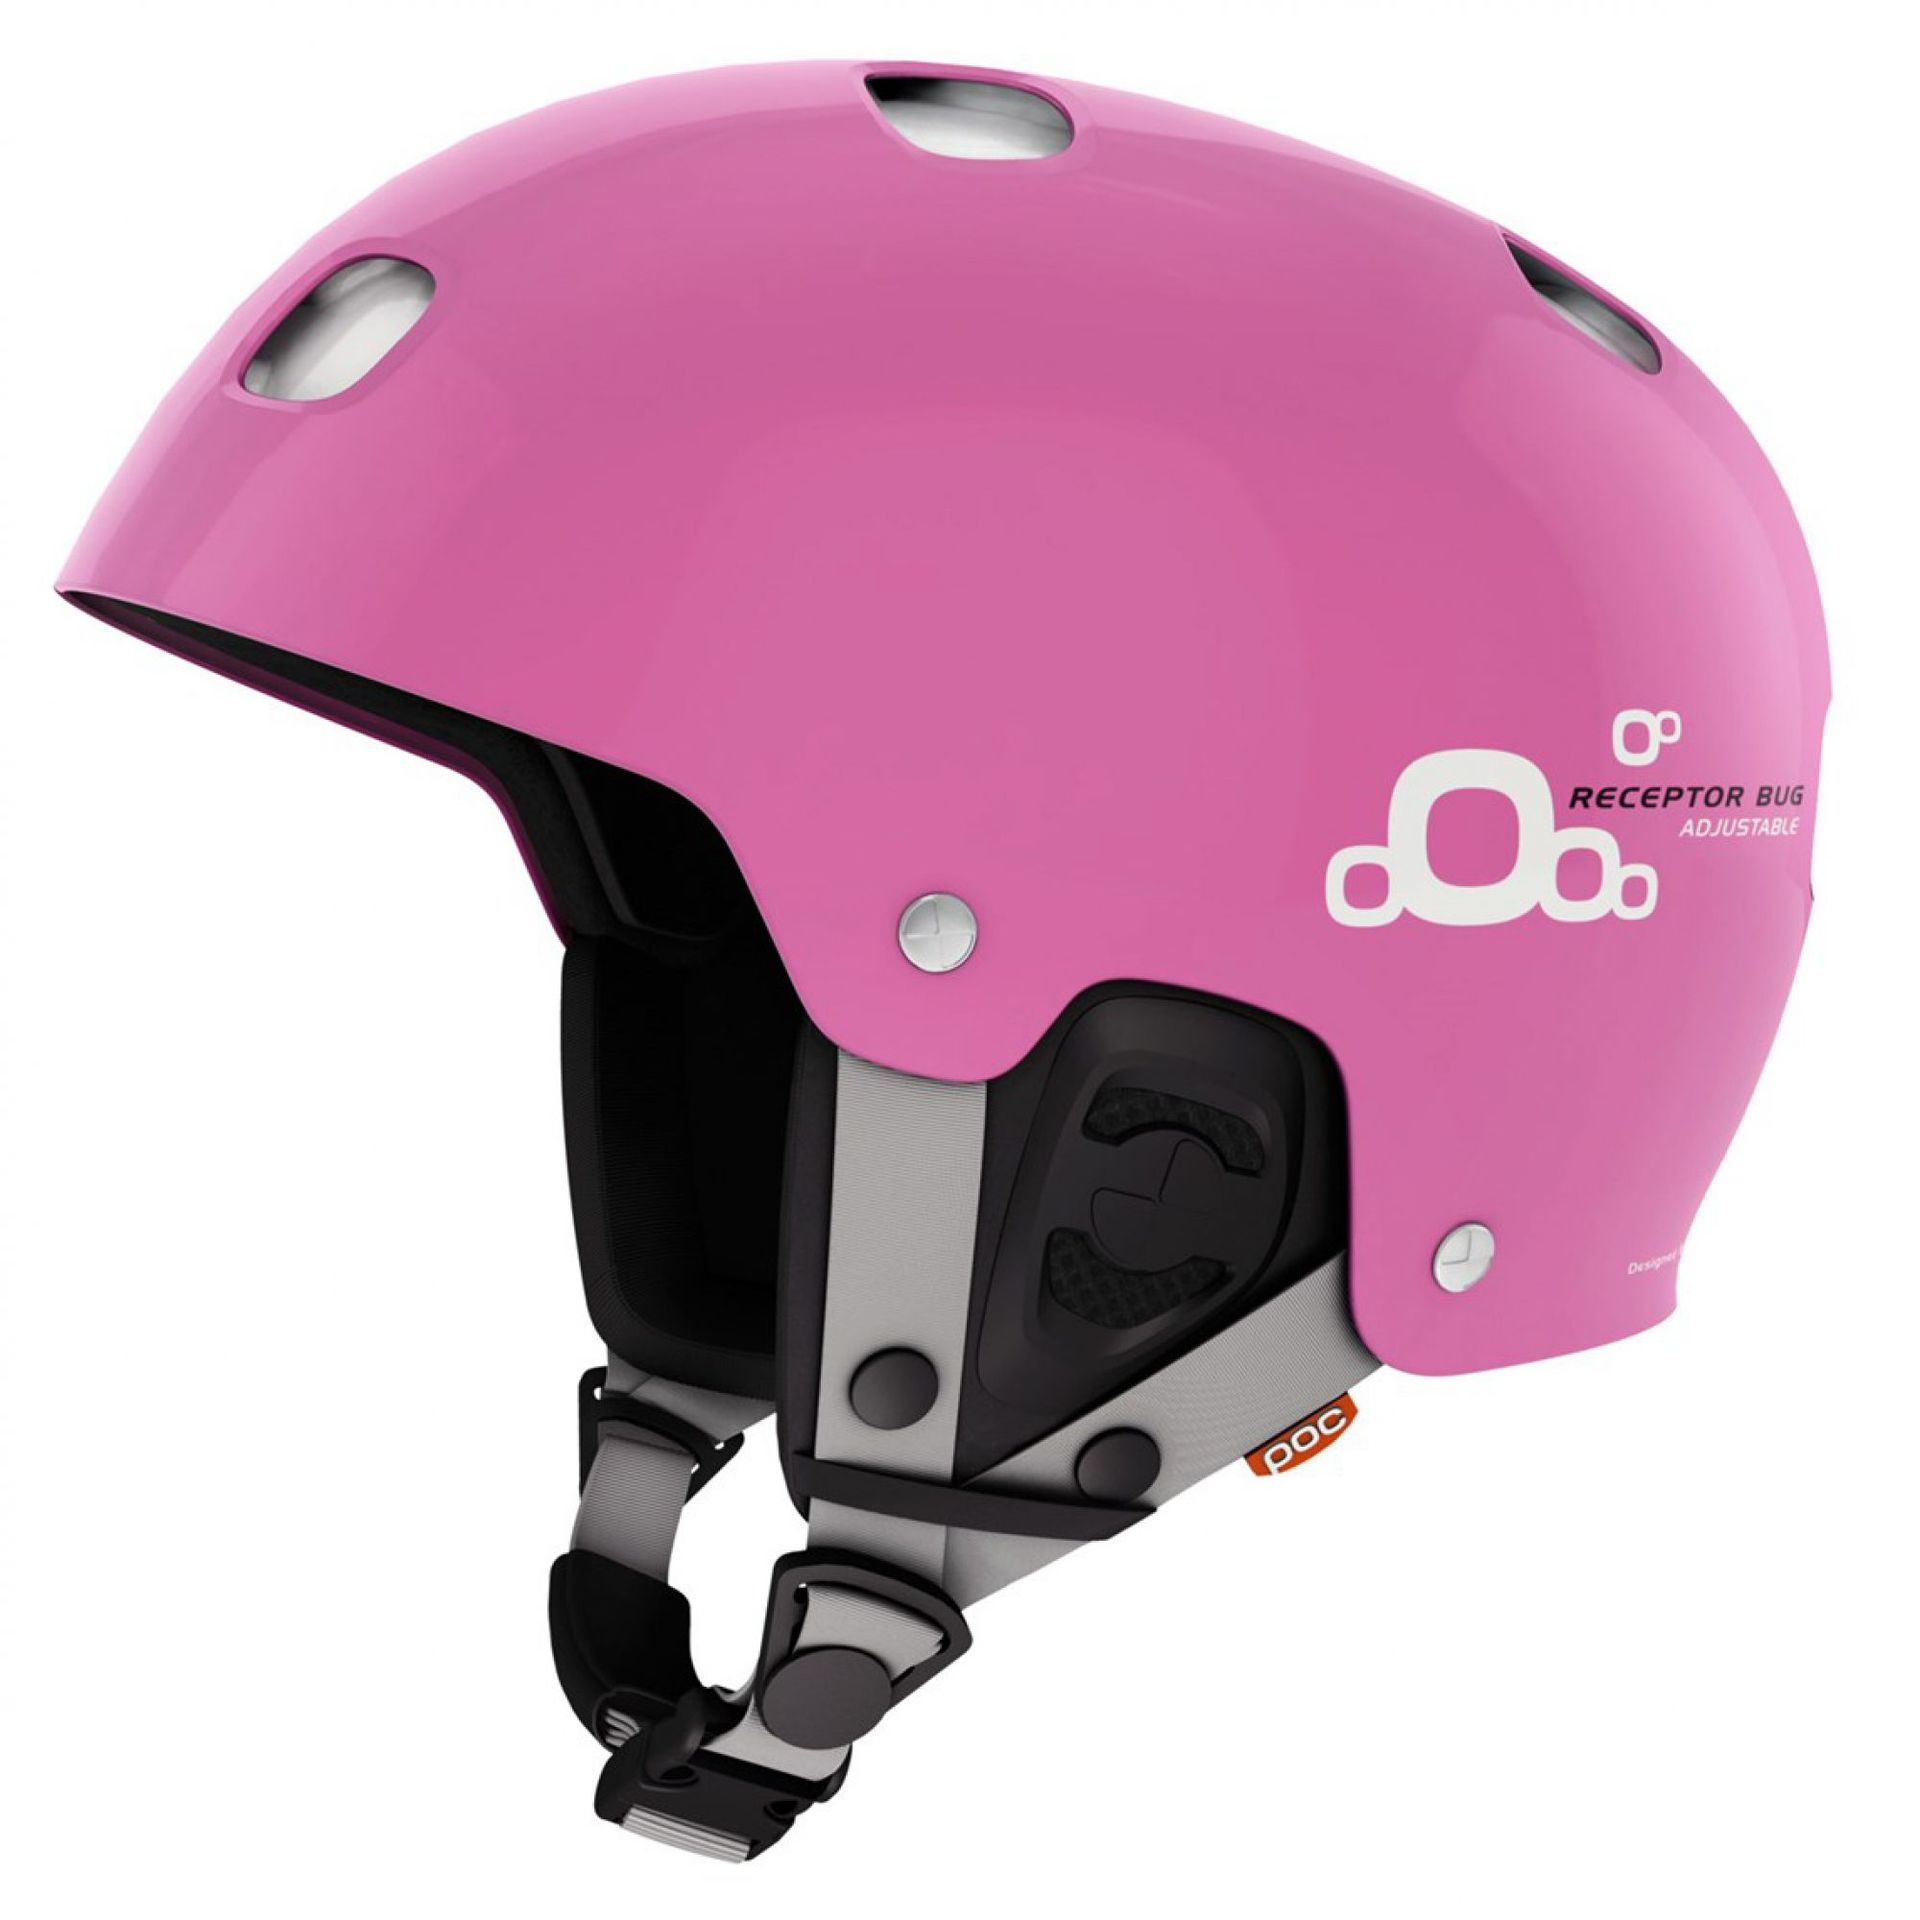 KASK POC RECEPTOR BUG ADJUSTABLE 2.0 PINK